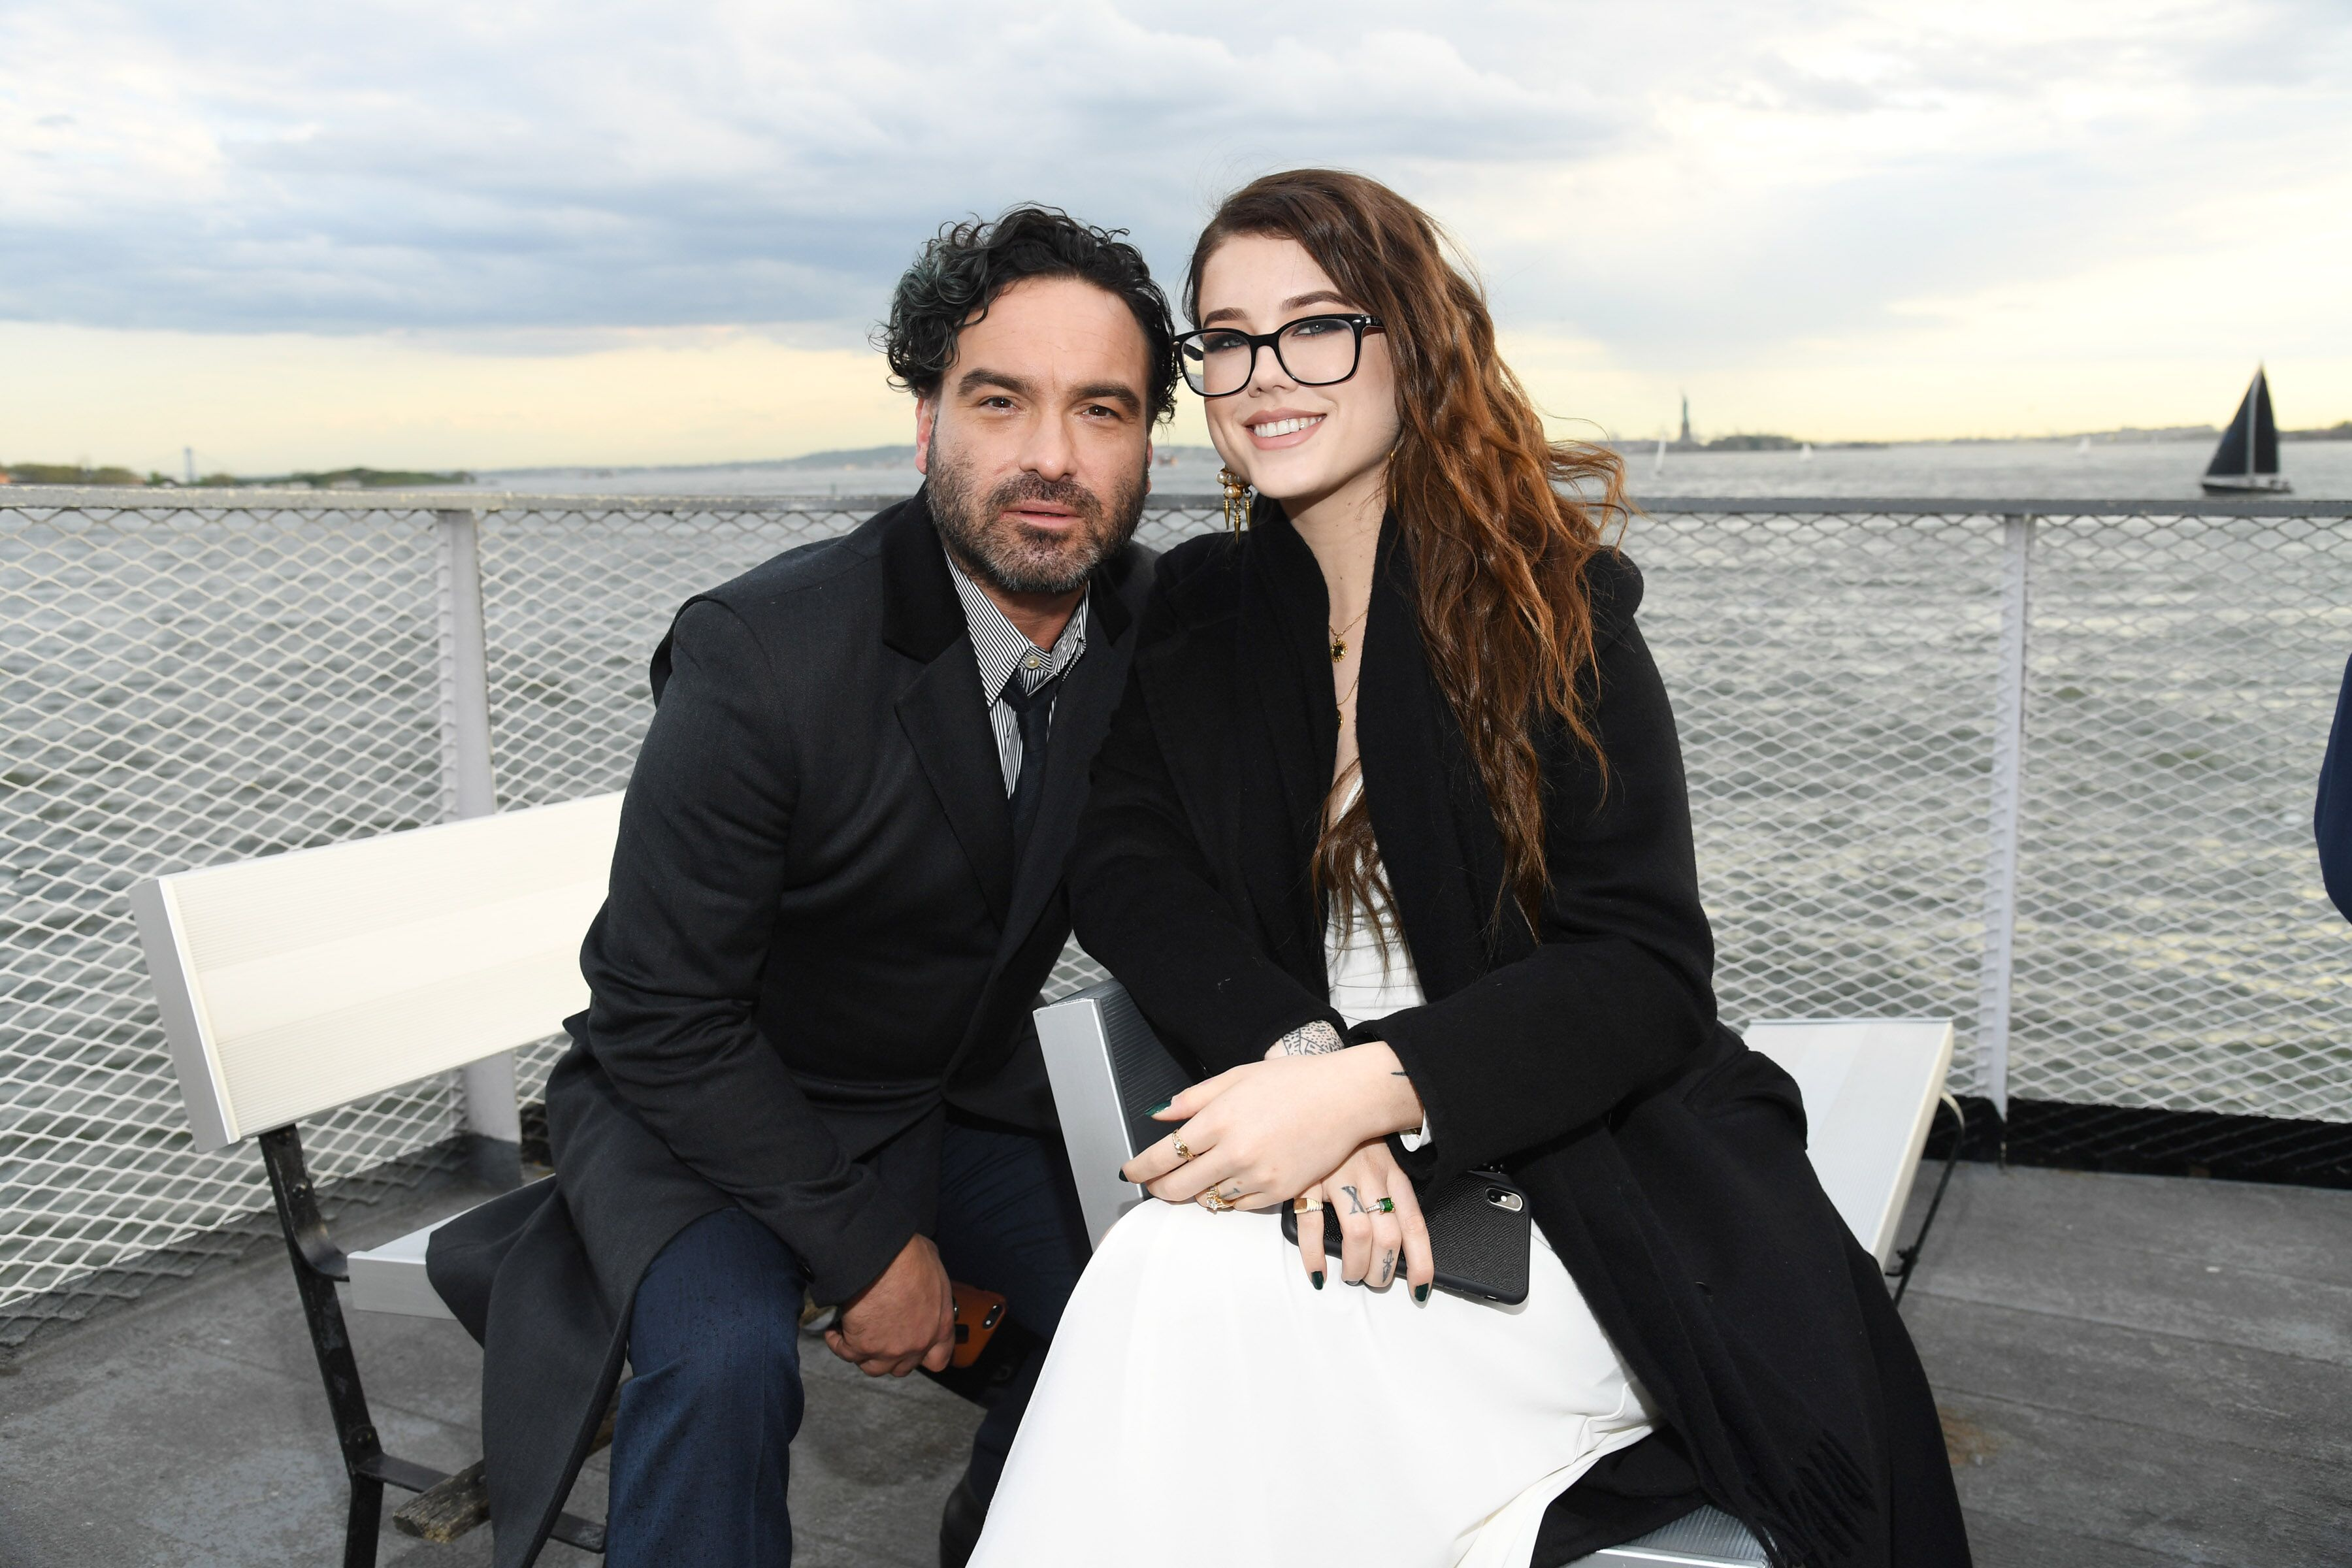 Johnny Galecki and Alaina Meyer attend the Statue Of Liberty Museum Opening Celebration at Battery Park on May 15, 2019. | Photo: Getty Images